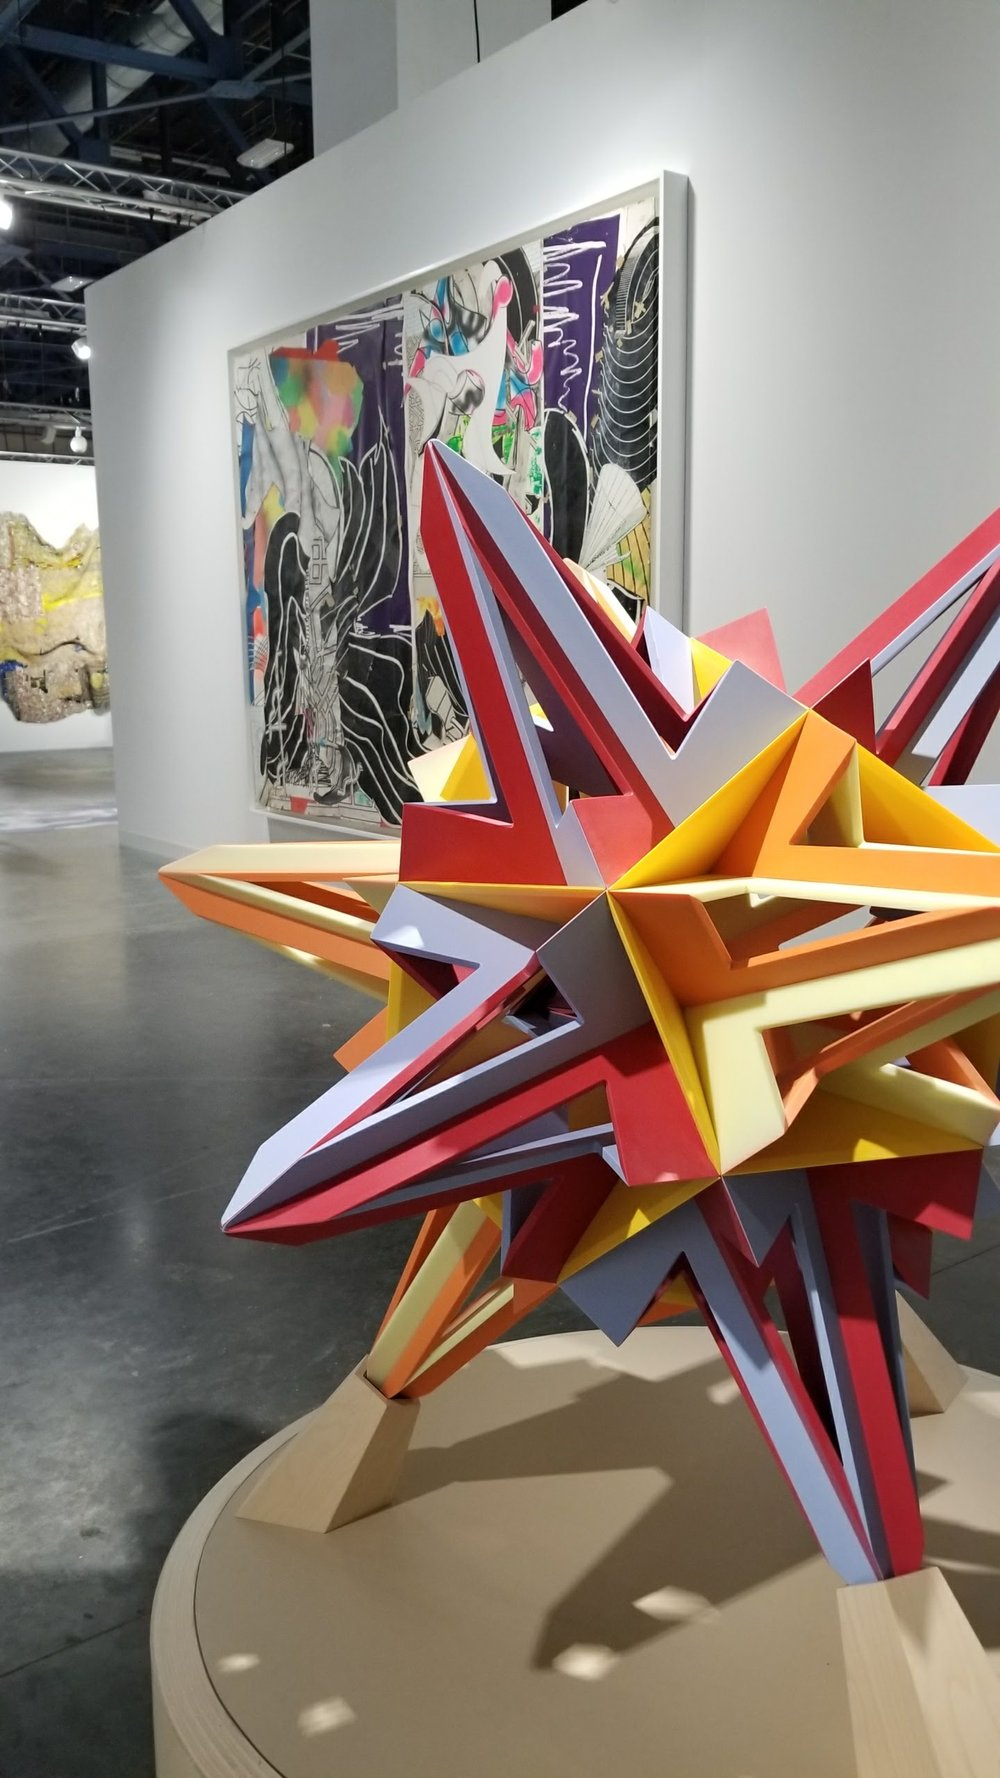 Some stunning pieces by Frank Stella